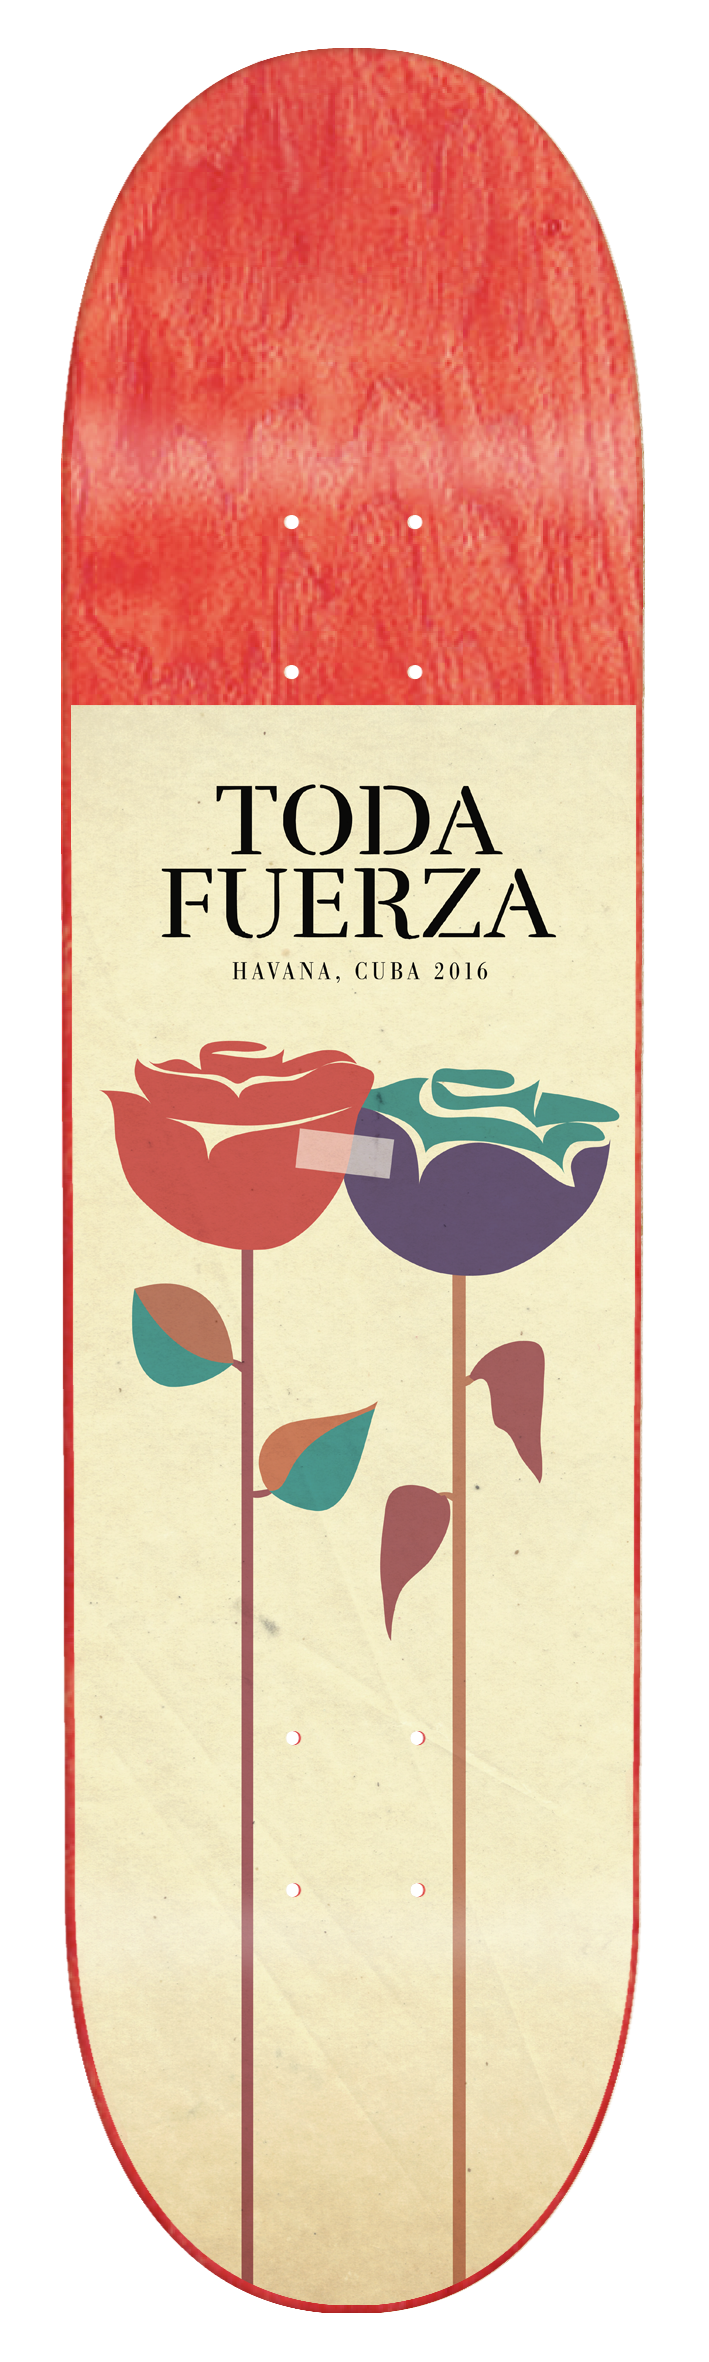 toda-fuerza-flowers-mockup.png